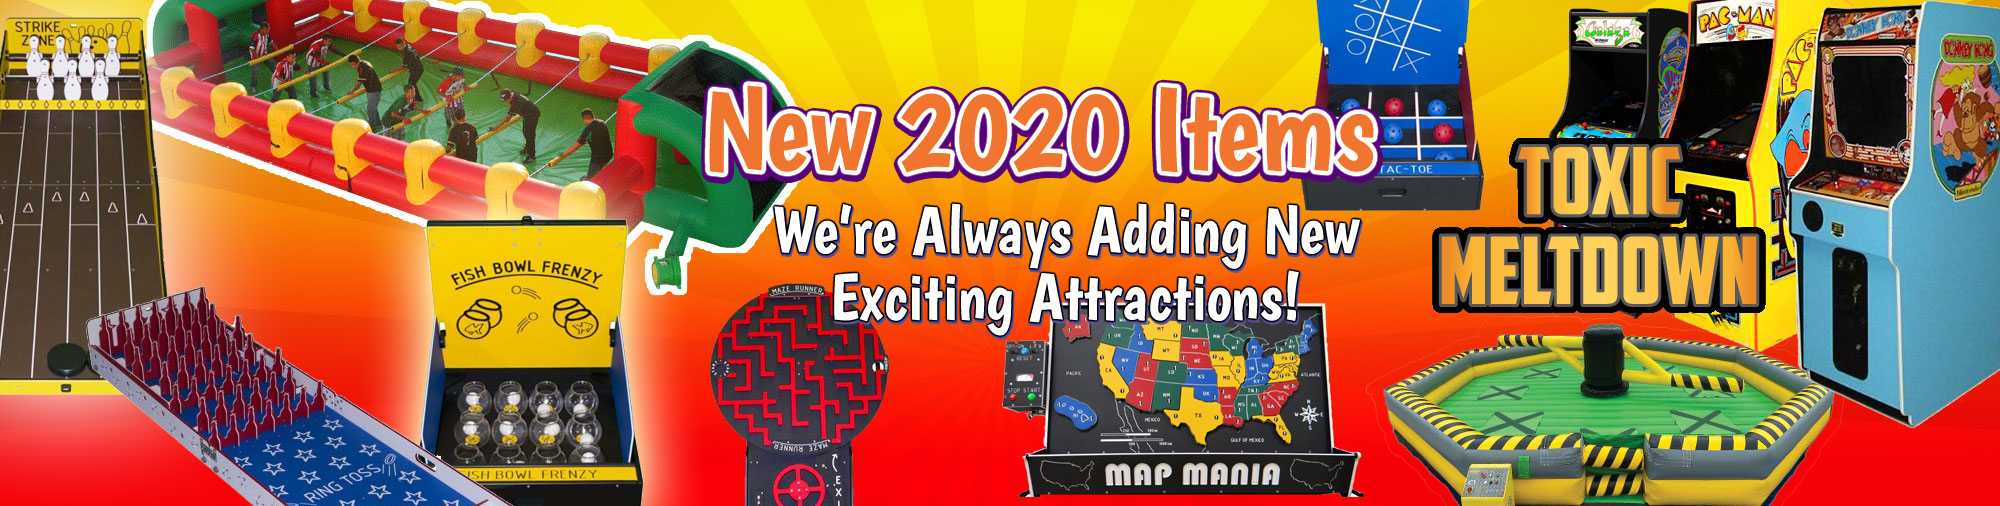 New items for 2020 Frisco TX